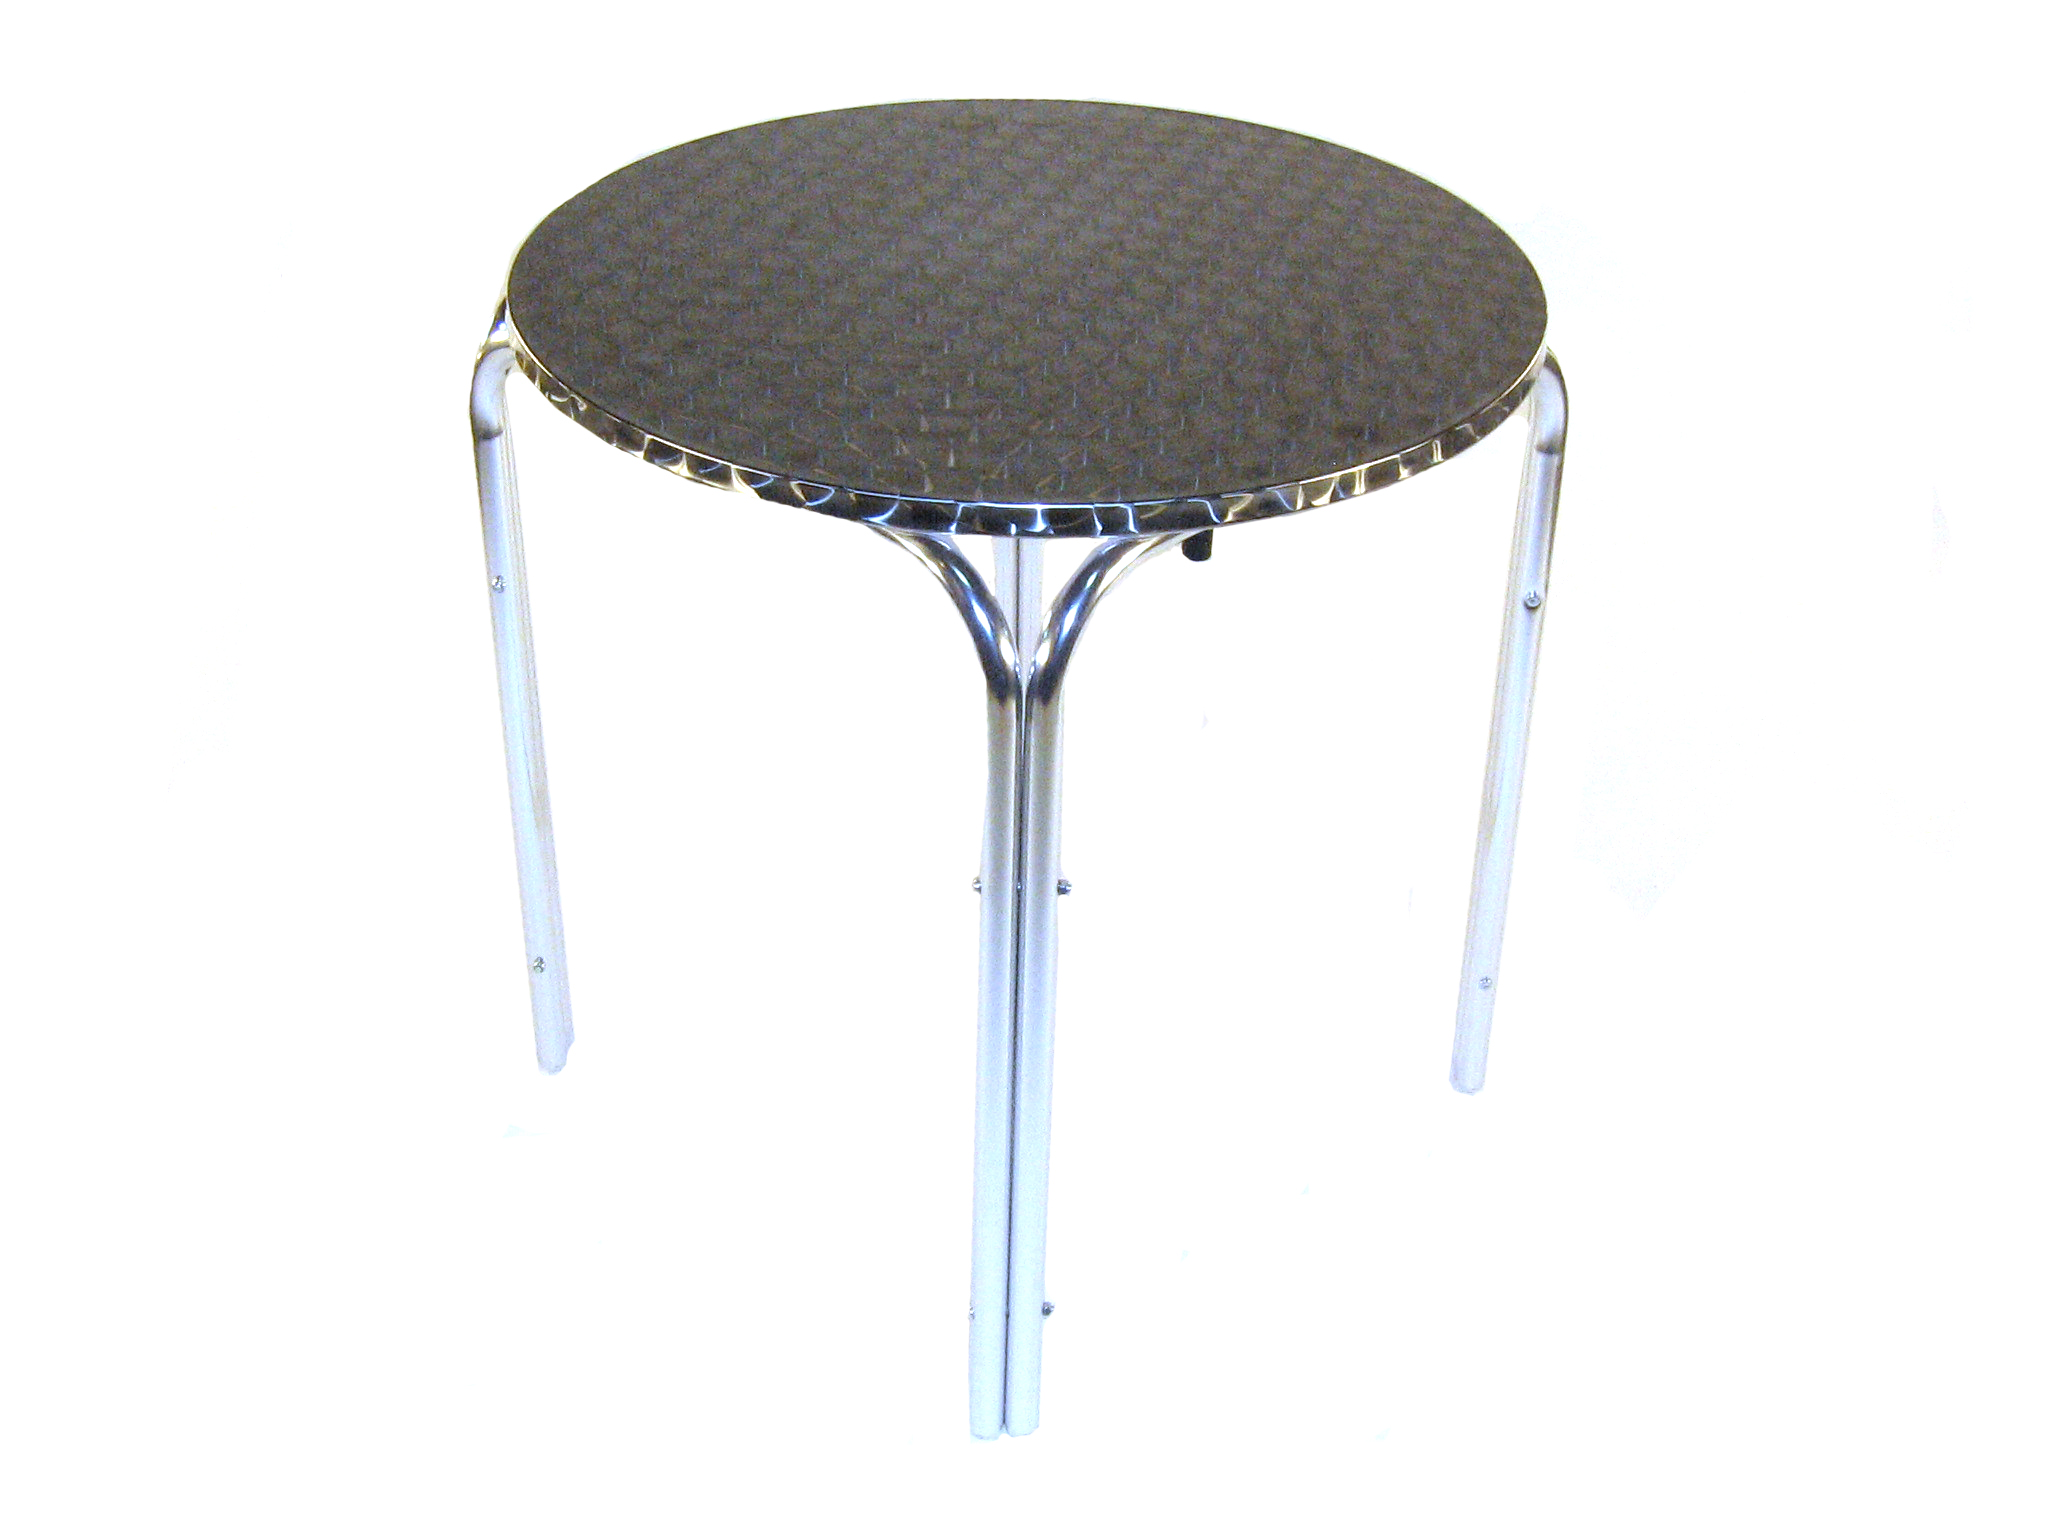 Aluminium Round Table - 70cm Dia Rolled Edge Table - BE Furniture Sales